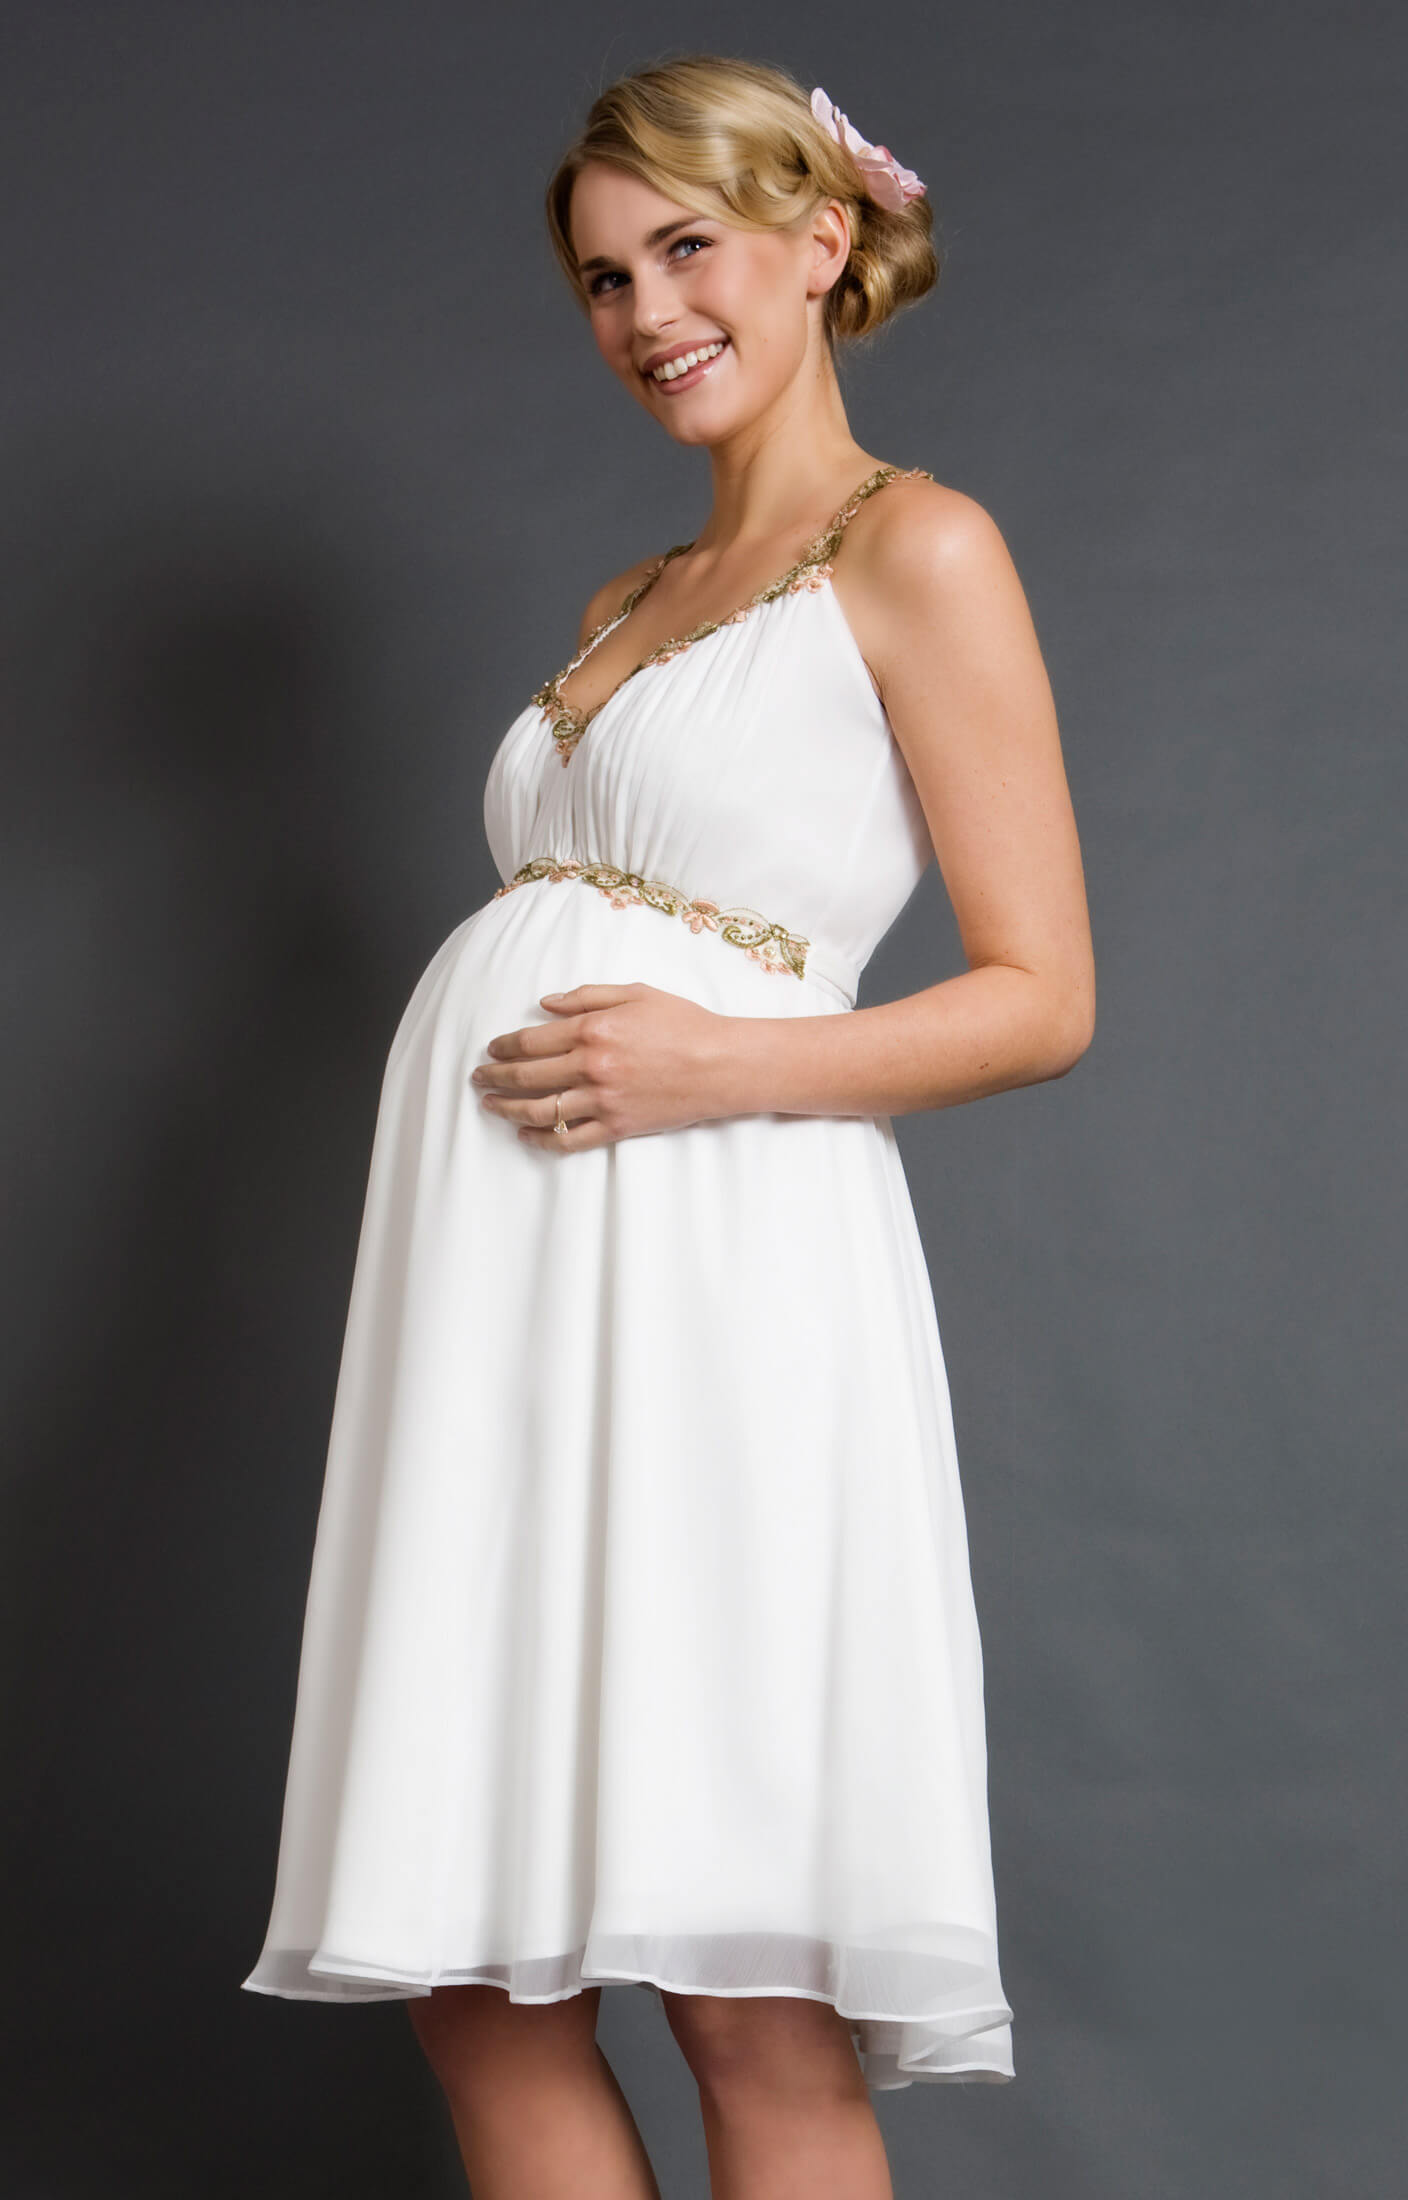 Grecian maternity dress maternity wedding dresses evening wear grecian maternity dress by tiffany rose ombrellifo Gallery